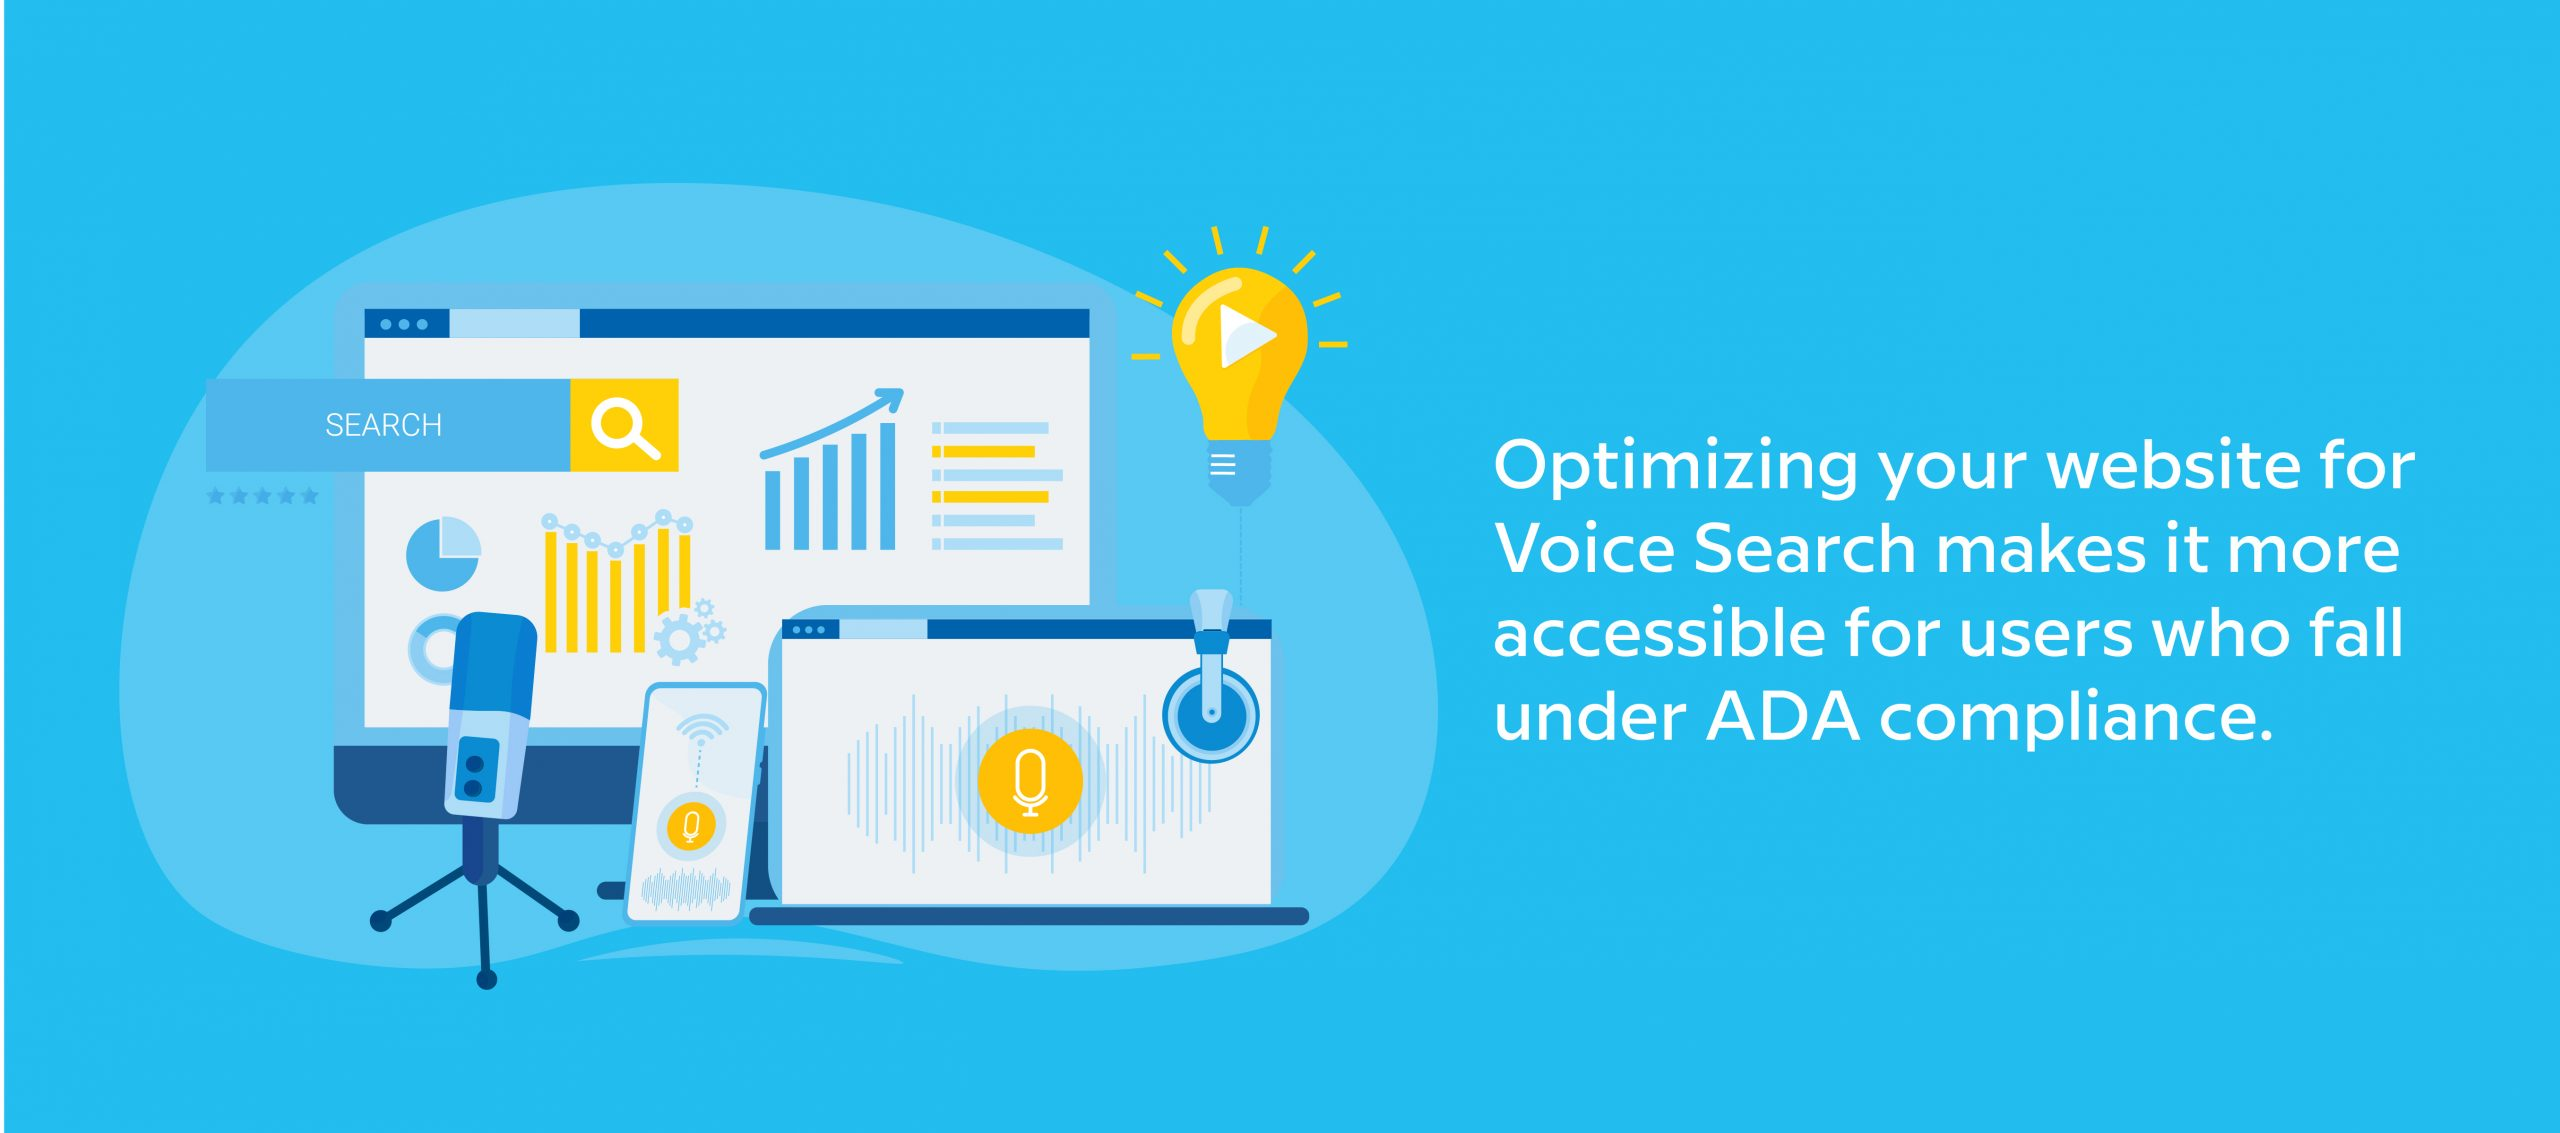 Optimizing your website for Voice Search makes it more accessible for users who fall under ADA compliance.